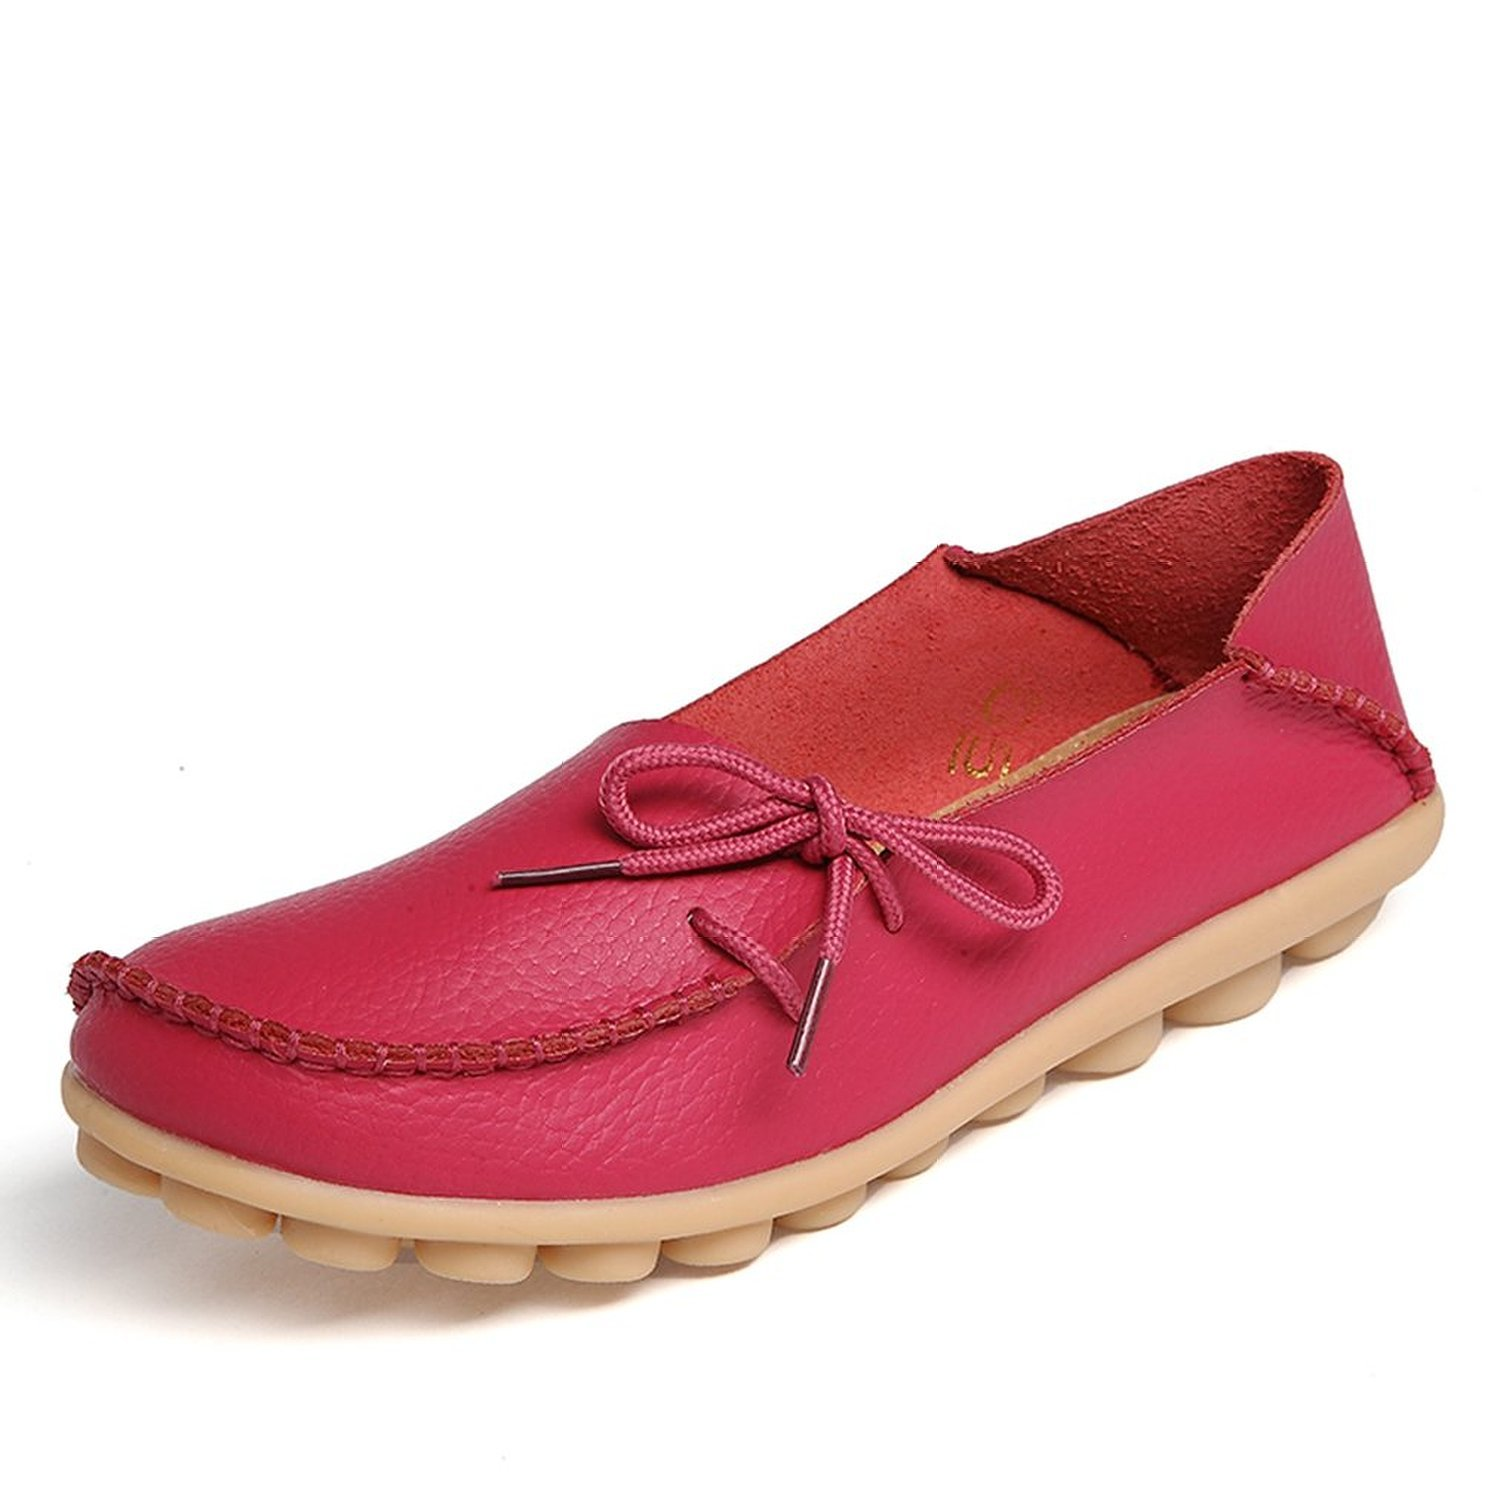 bedbf09df Amazon.com | Women's Driving Shoes Cowhide Casual Lace-Up Loafers Boat Shoes  Flats | Loafers & Slip-Ons